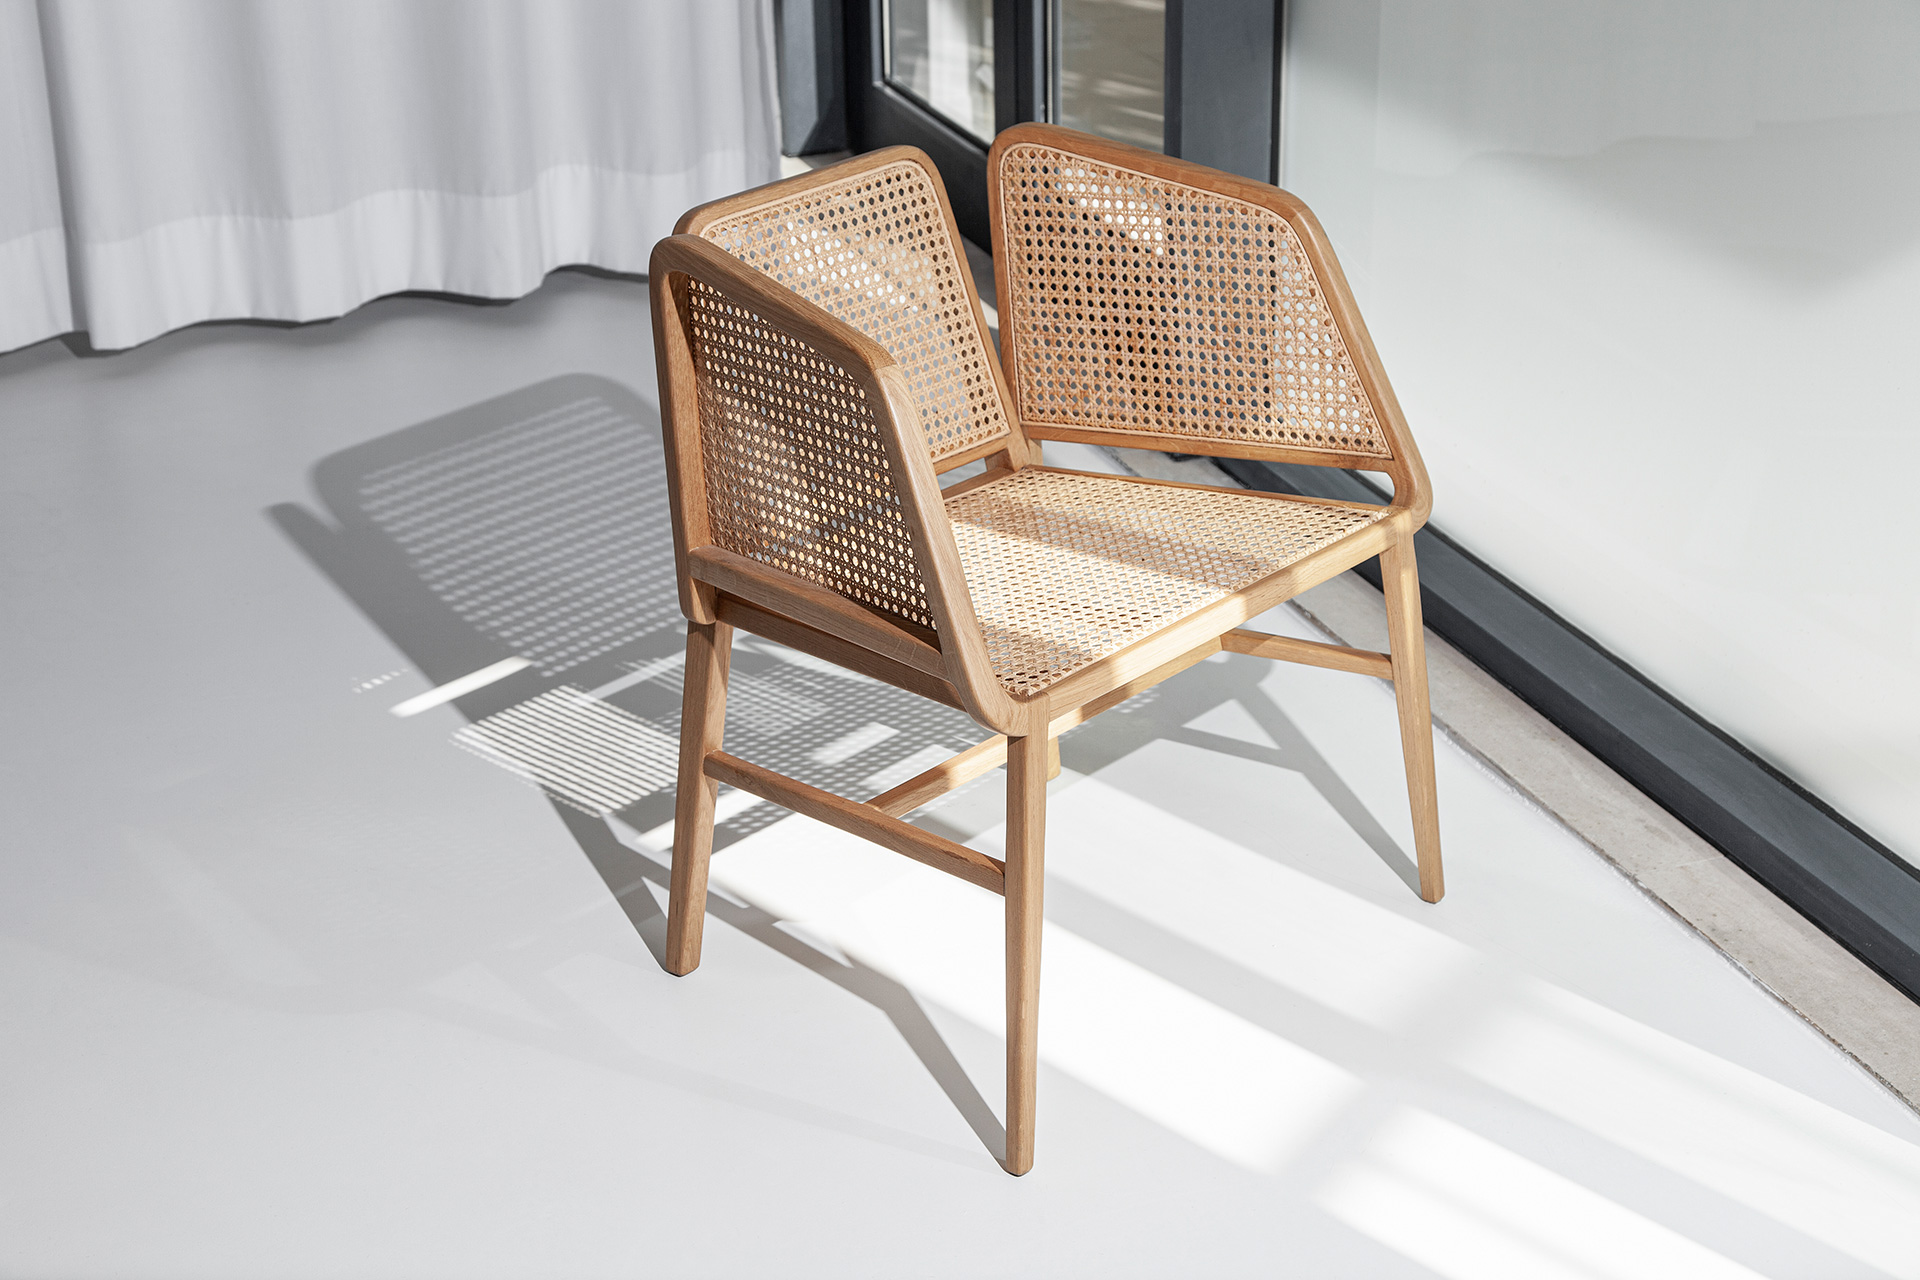 Bee Chair View- DESIGN BY MIGUEL SOEIRO